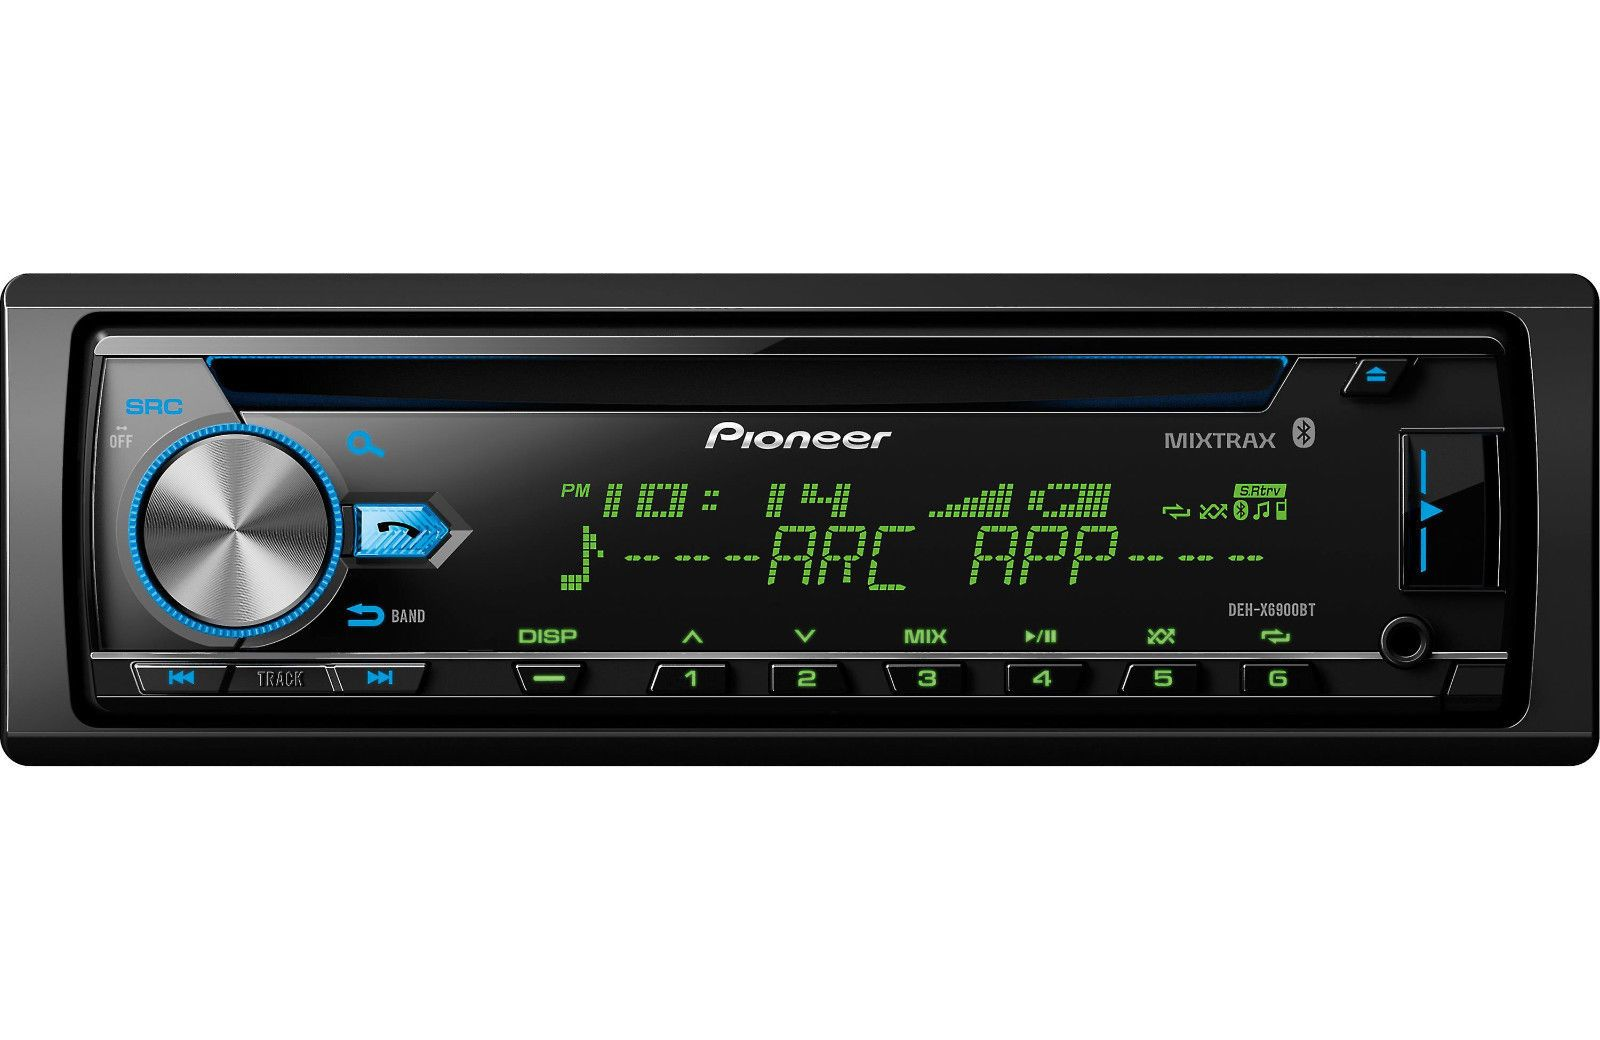 Pioneer DEH-X6900BT CD/MP3/WMA Player Built-in Bluetooth MIXTRAX